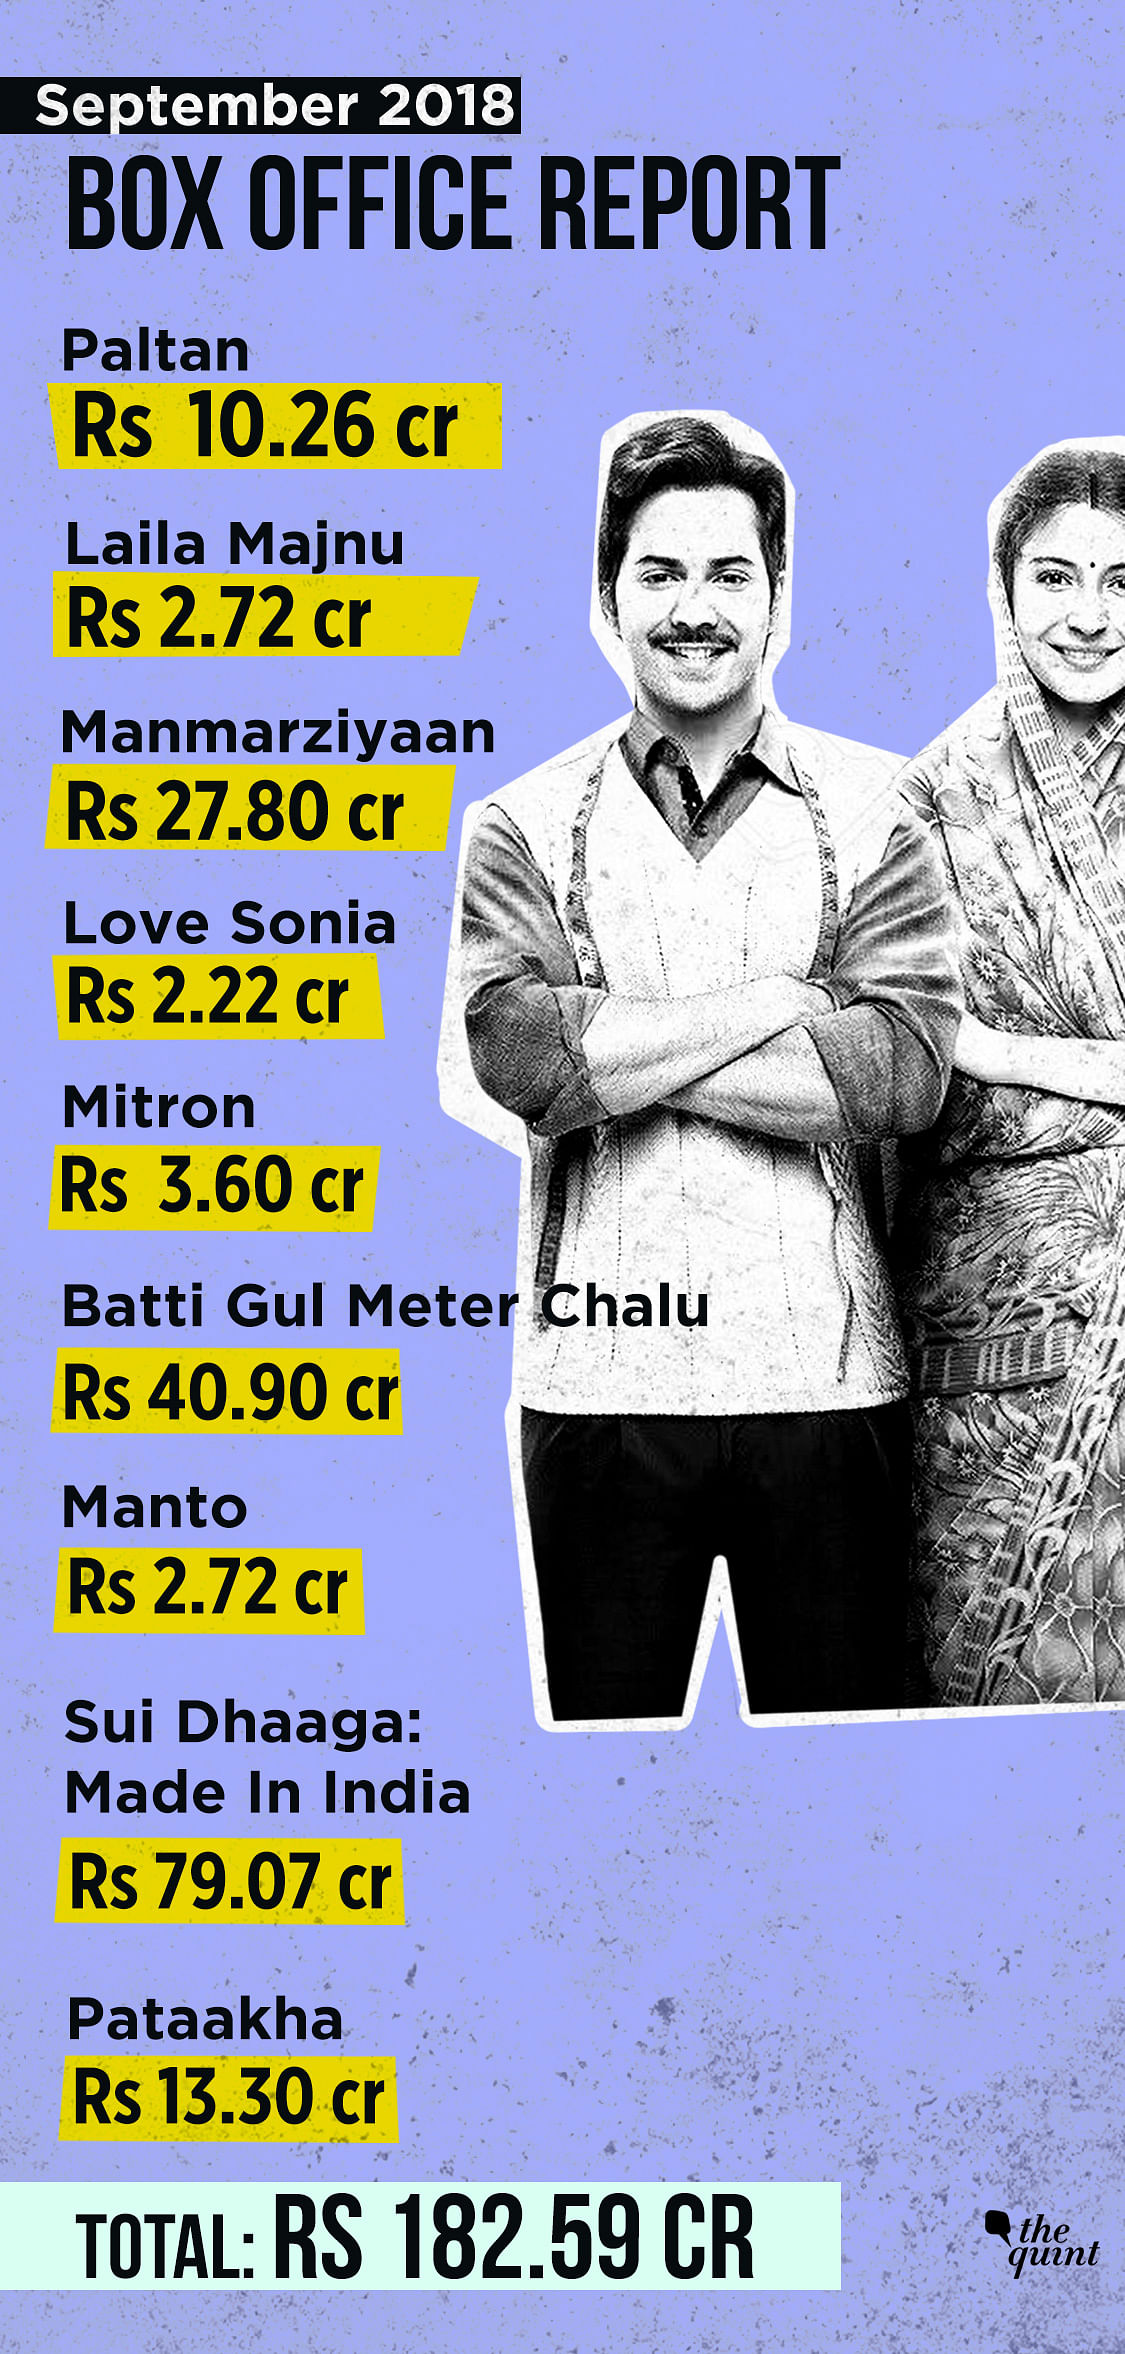 'Sui Dhaaga: Made In India' was the top earner in September 2018.